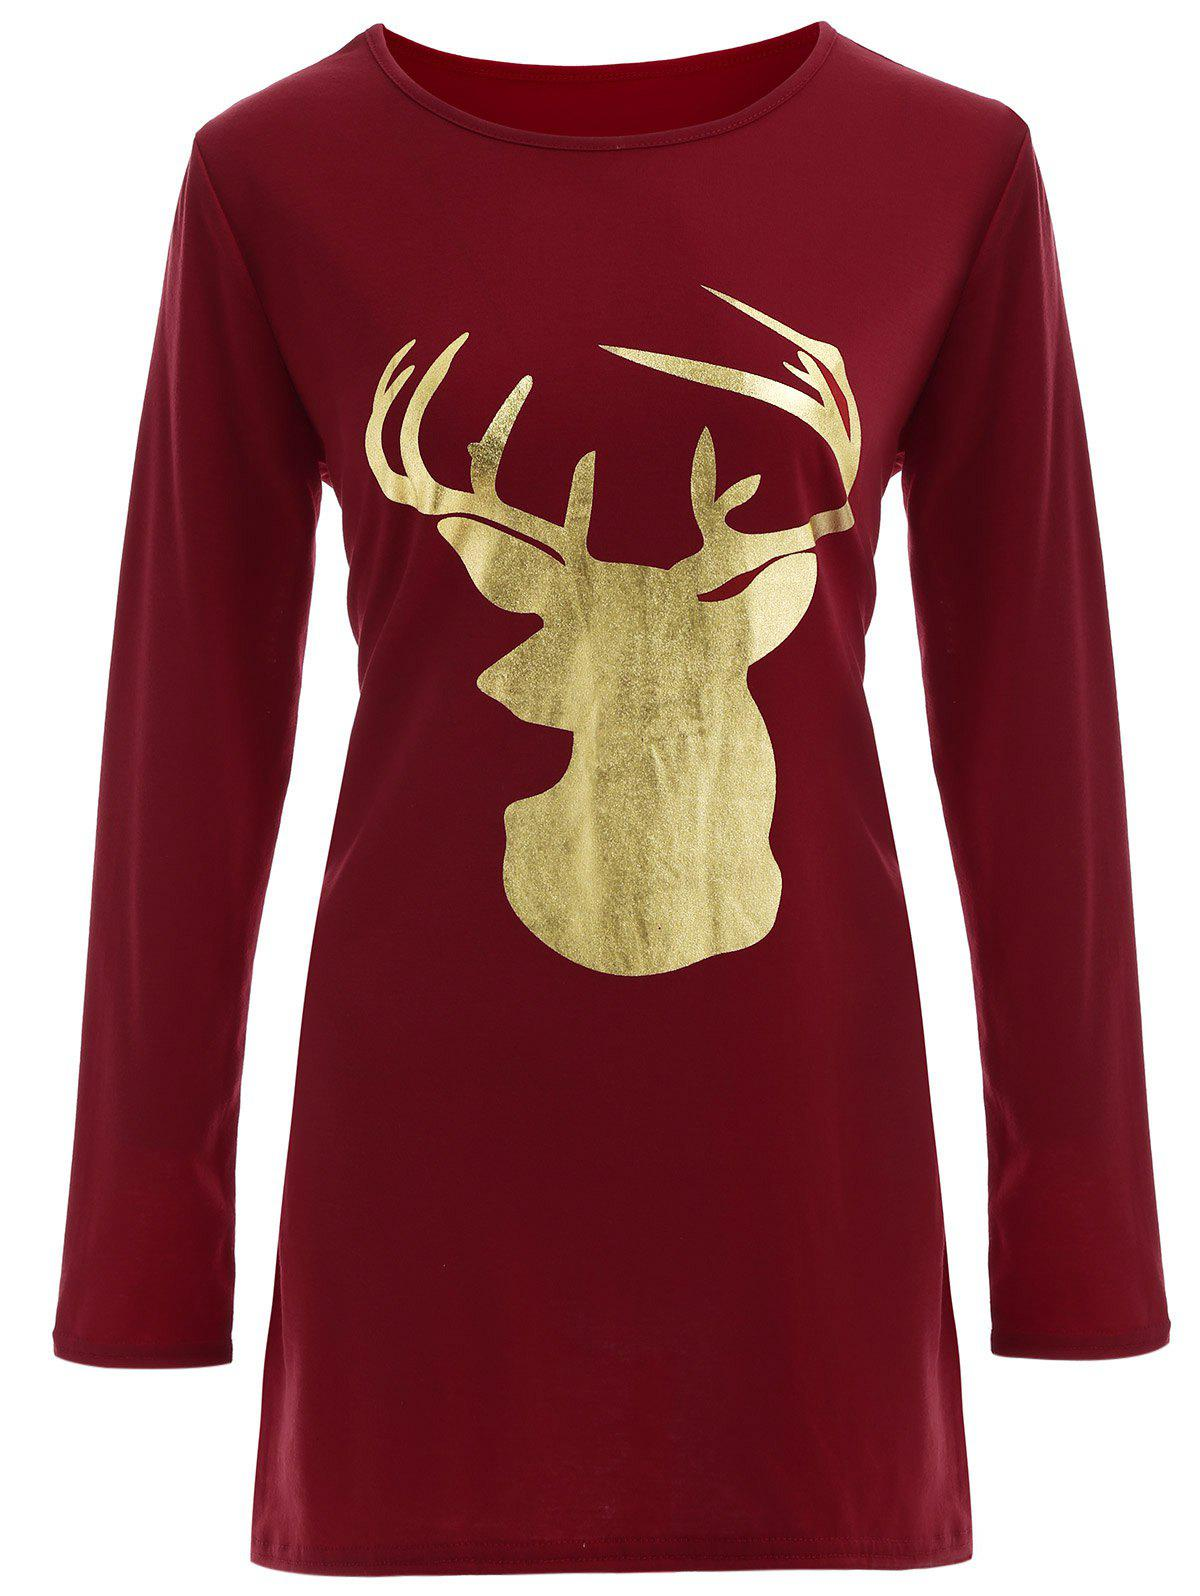 Reindeer Graphic Long Sleeve Christmas Tee Dress reindeer prestige wiklina